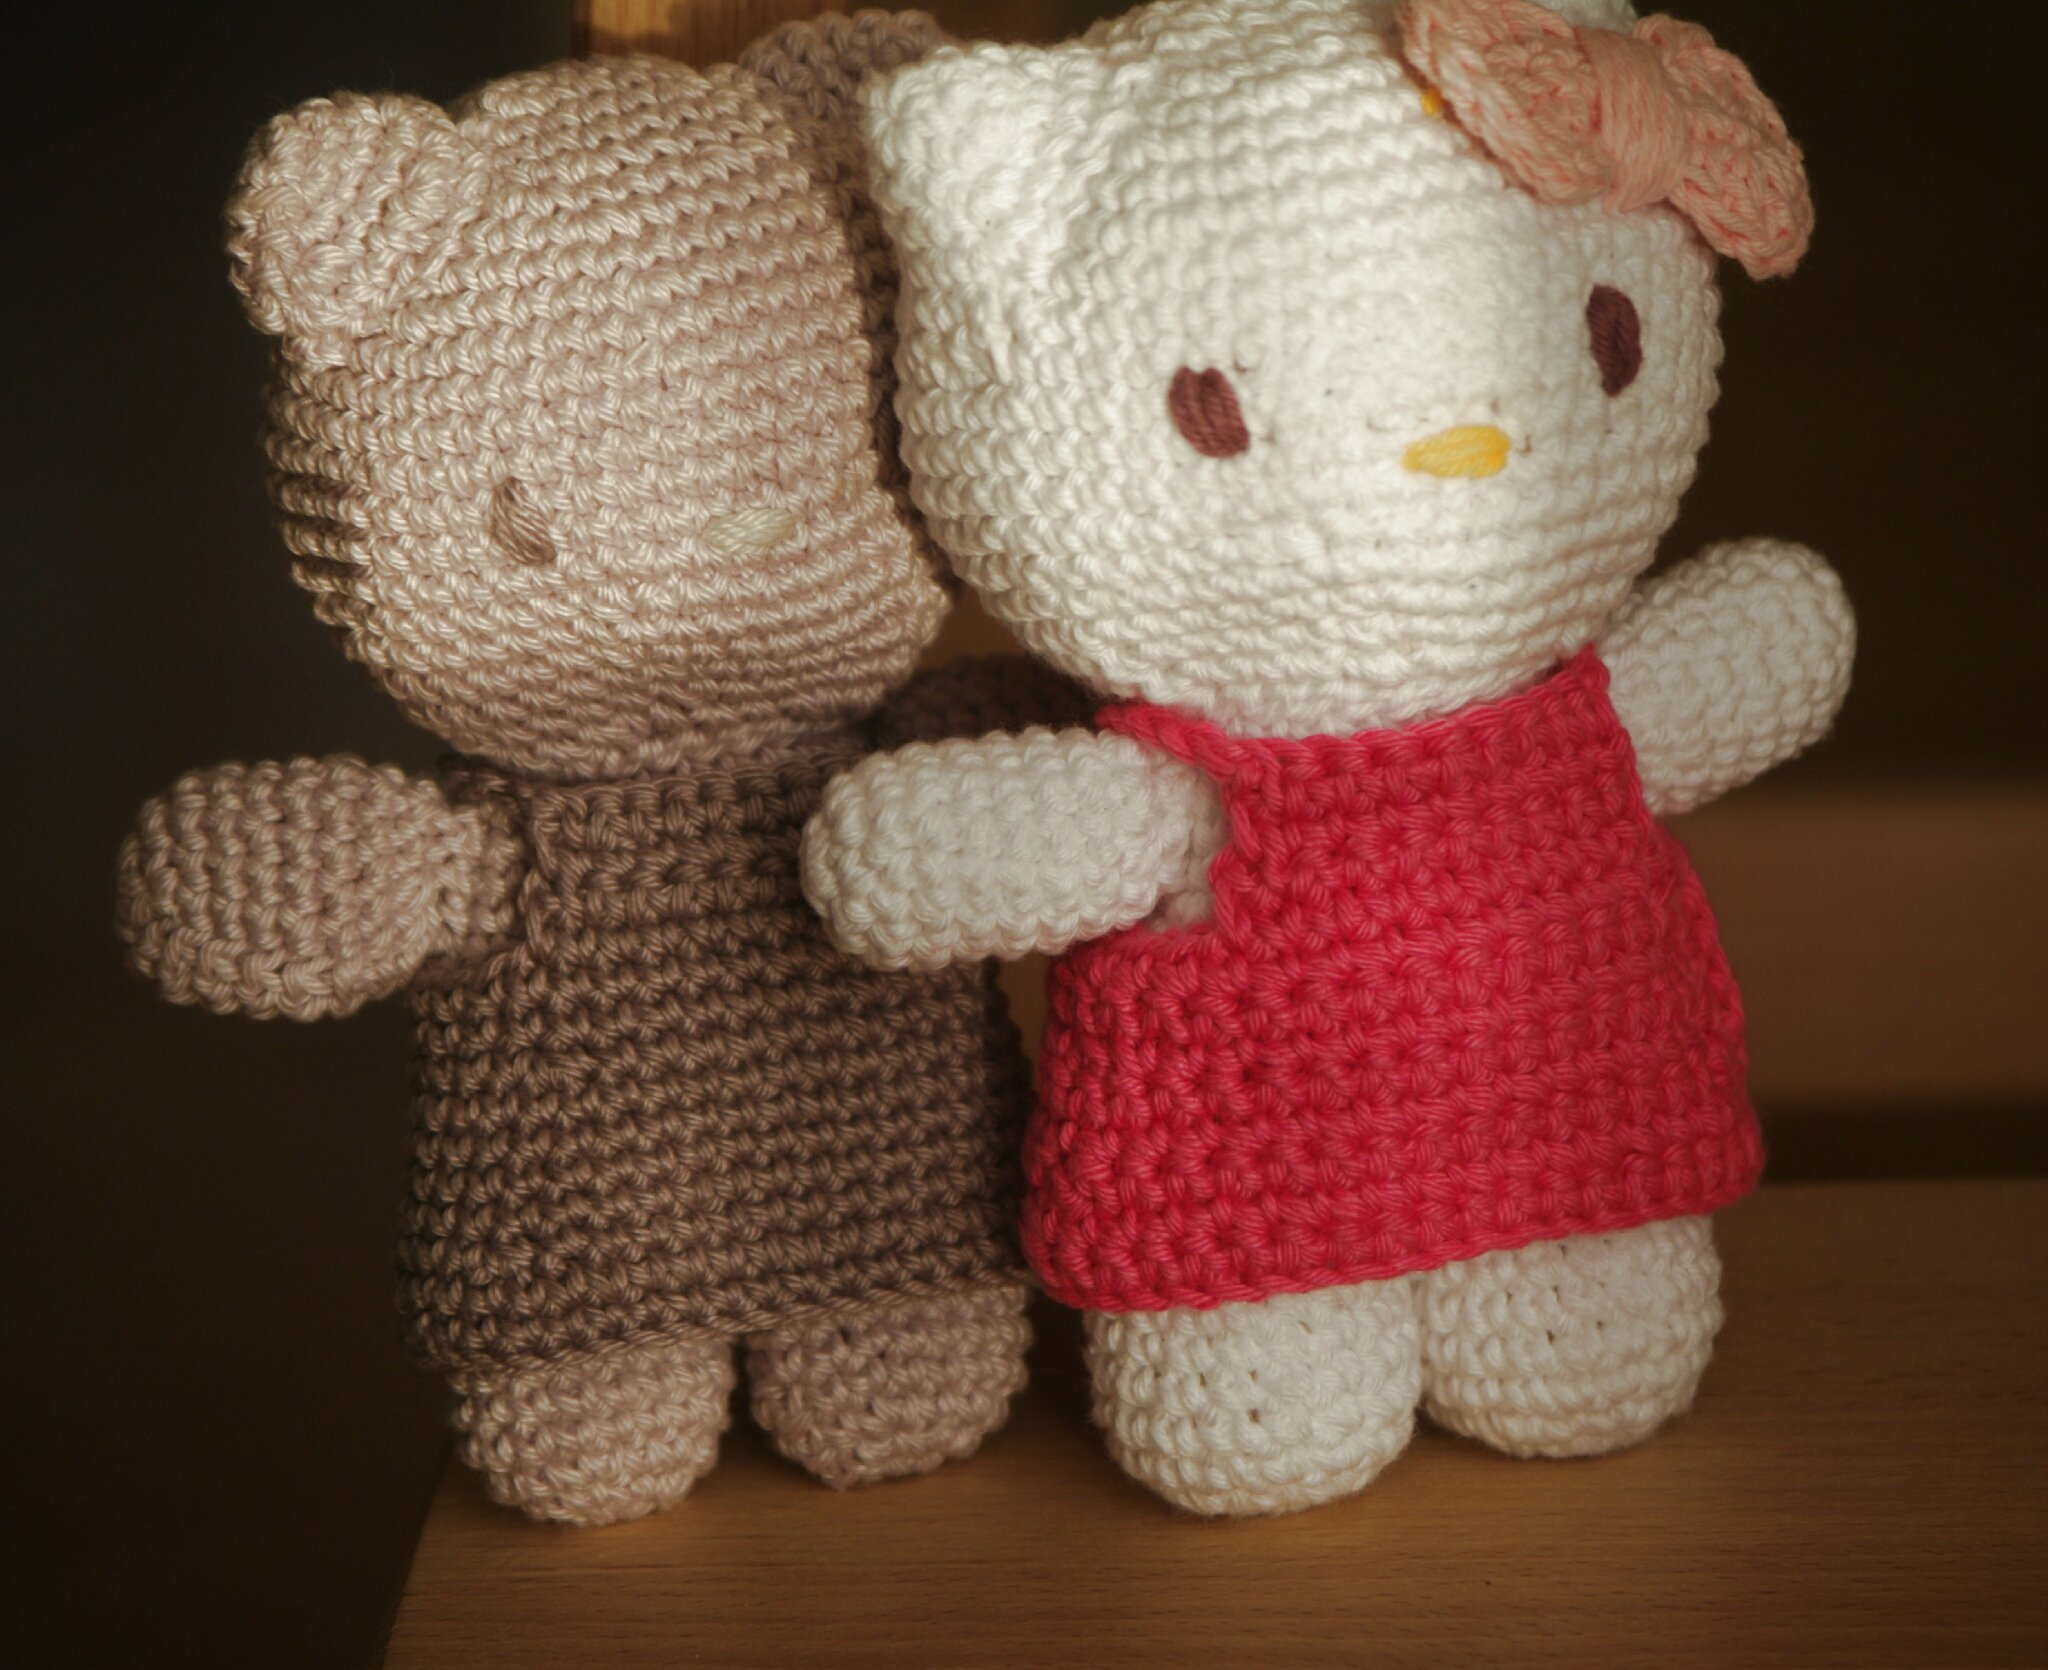 crocheter un amigurumi hello kitty